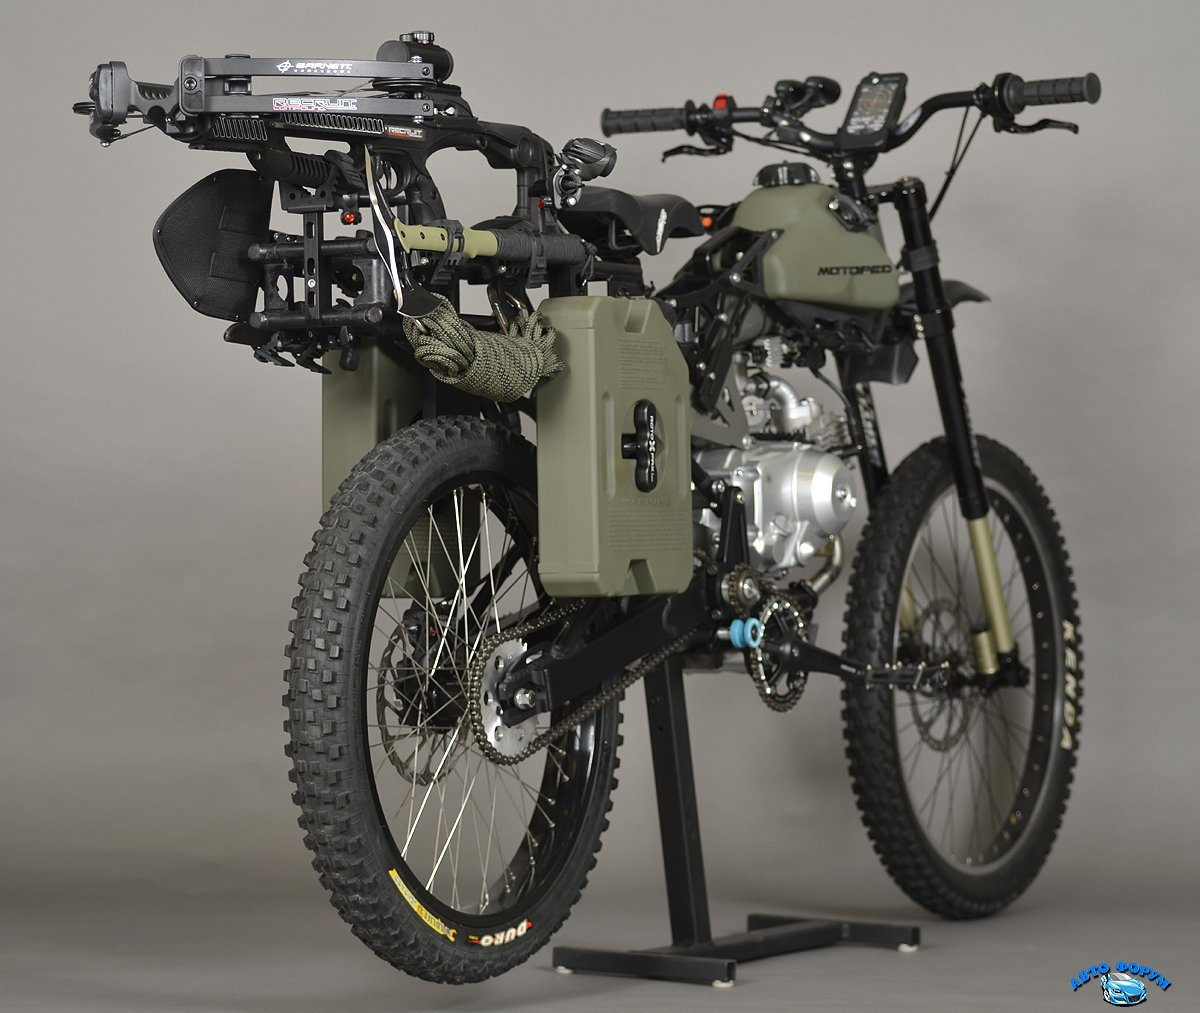 motopeds-survival-bike-is-the-ultimate-in-pedal-power-adventuring-photo-gallery_3.jpg